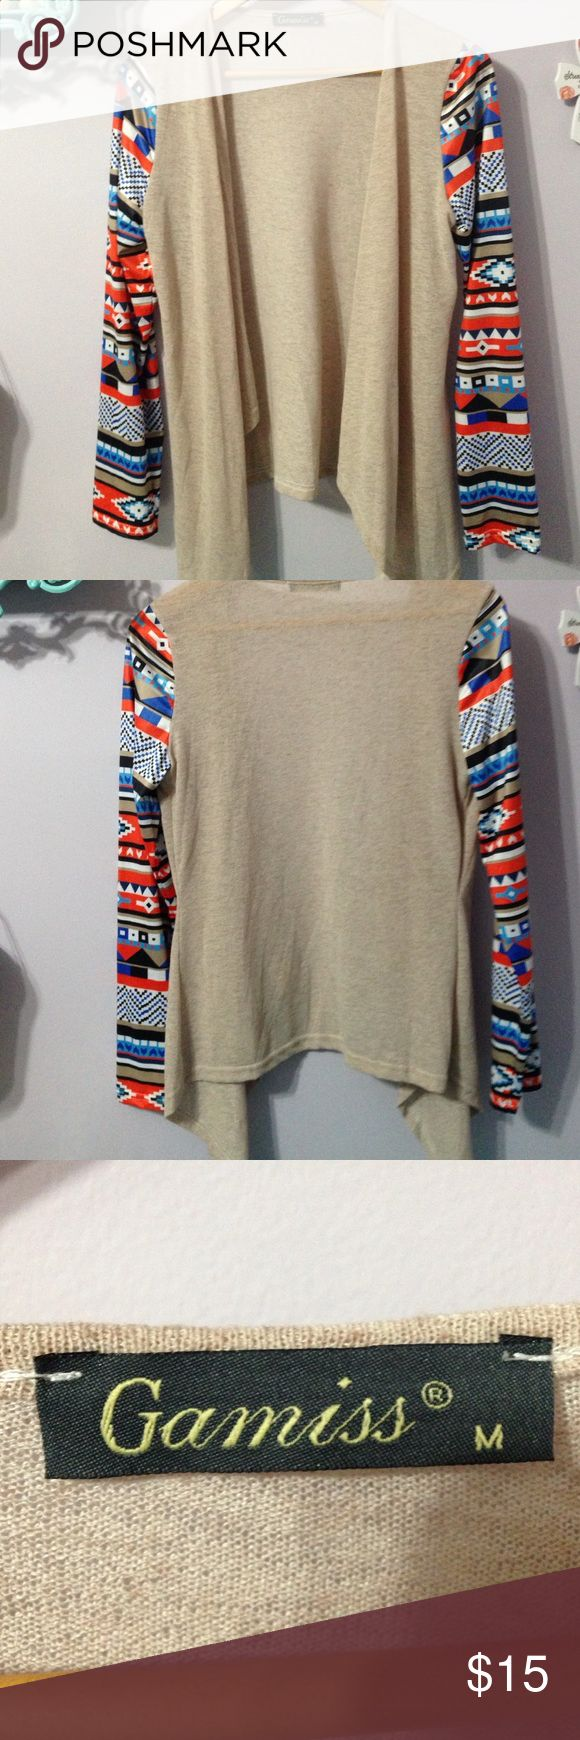 Cardigan with Aztec print sleeves New never worn cardigan, can been dressed up or dressed down. Perfect for any occasion gamiss Tops